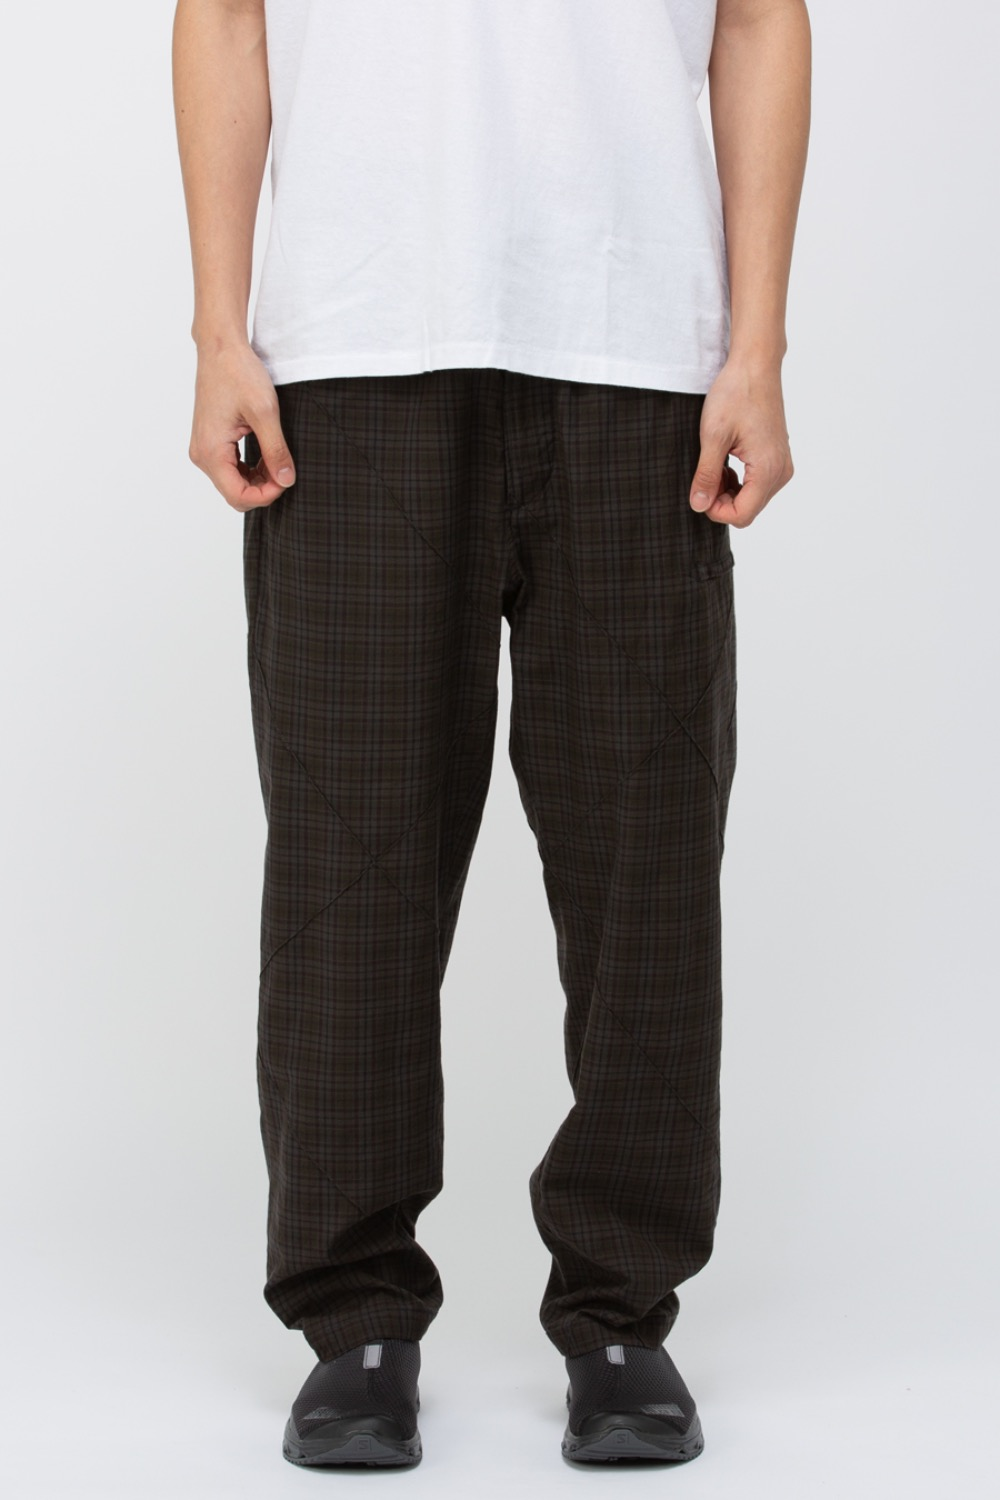 DRAWSTRING PANT DARK OLIVE COTTON PINTUCK SAMLL PLAID